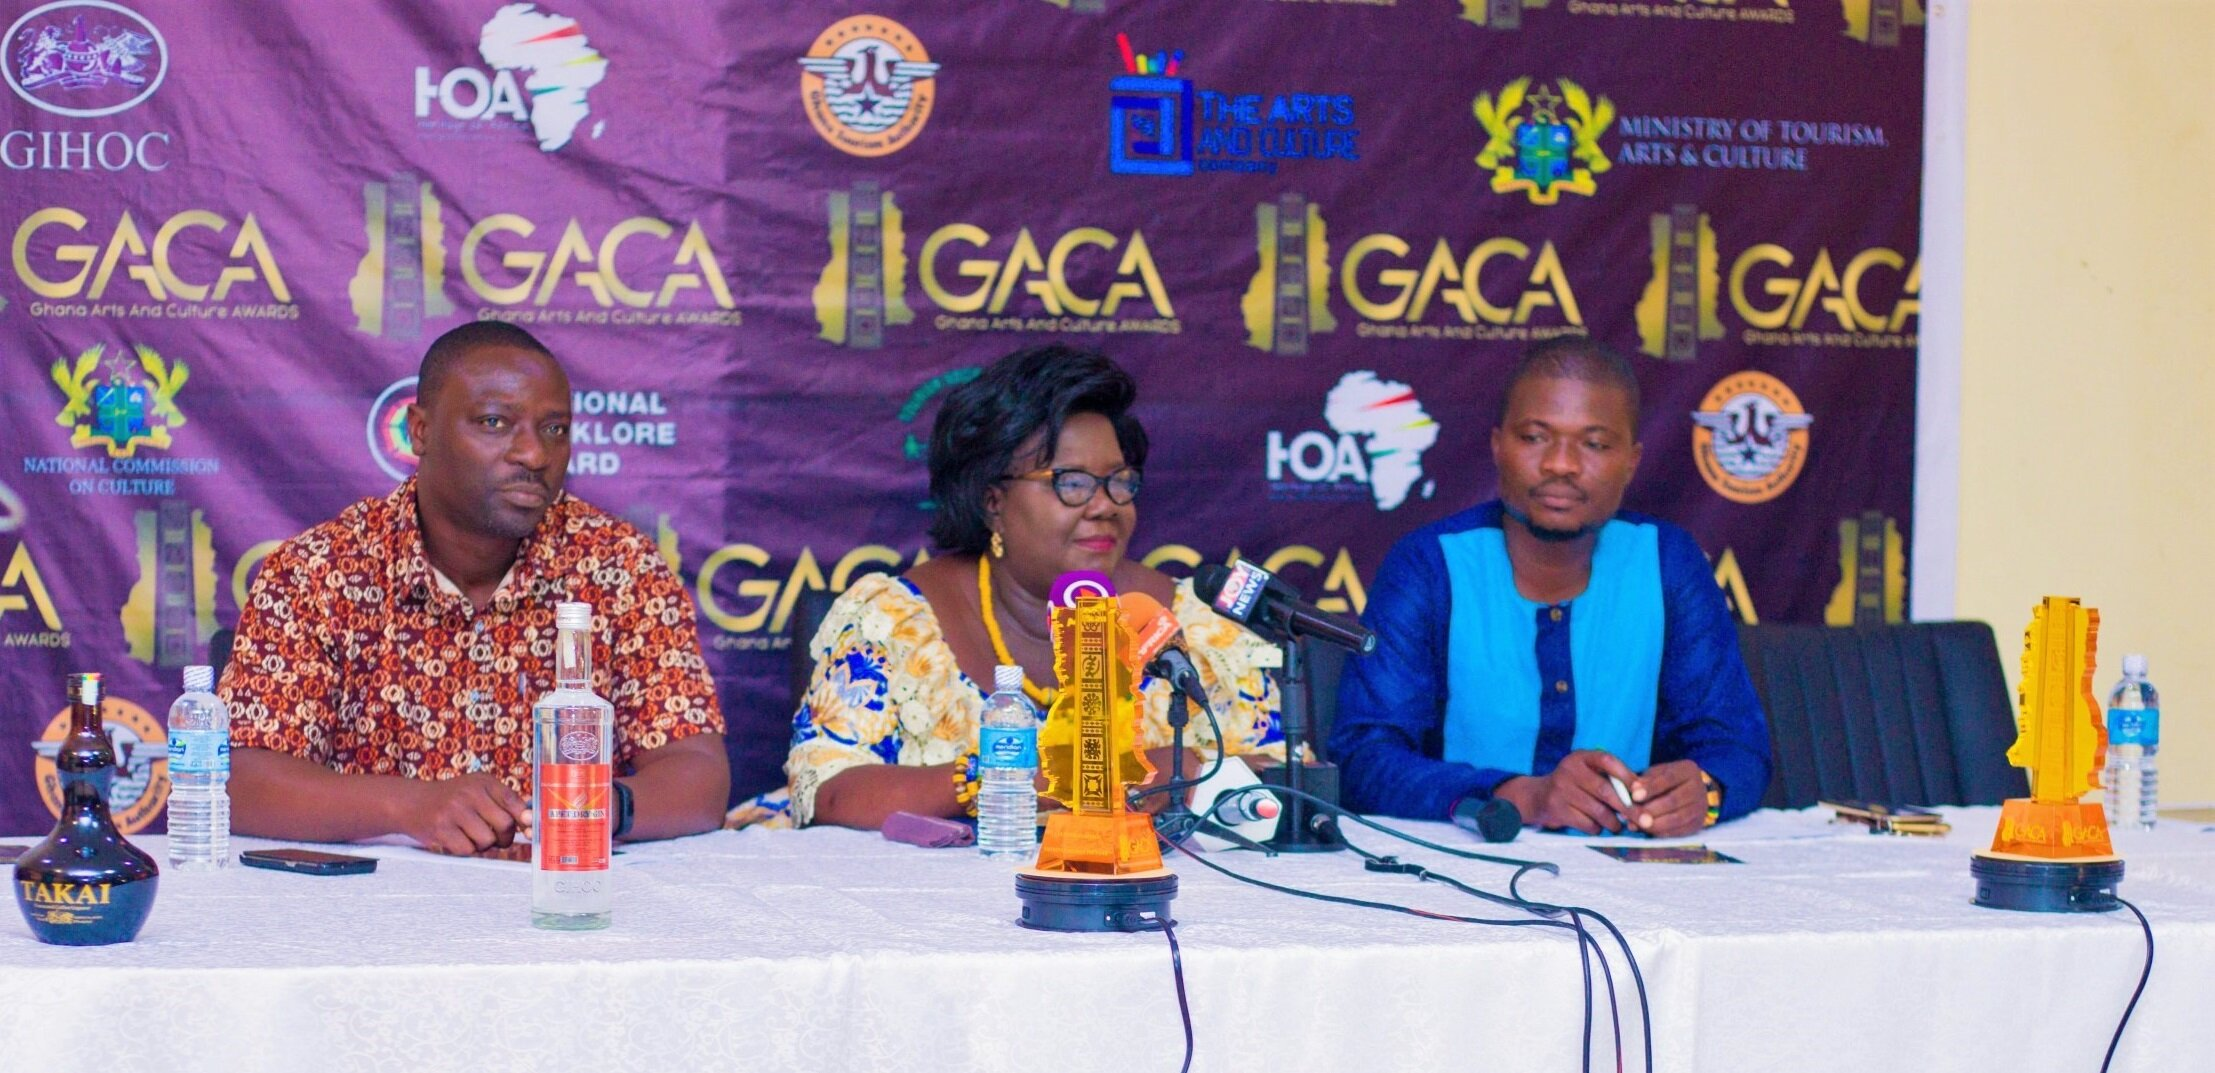 The Arts and Culture Company in partnership with the National Commission on Culture, Ghana Tourism Authority, National Folklore Board and Tourism Society of Ghana under the auspices of the Ministry of Tourism, Arts and Culture officially launched the  GHANA ARTS AND CULTURE AWARDS  on September 6, 2019 at the Accra Tourist Information Center and the event was being sponsored by GIHOC Distilleries Company Limited.  via